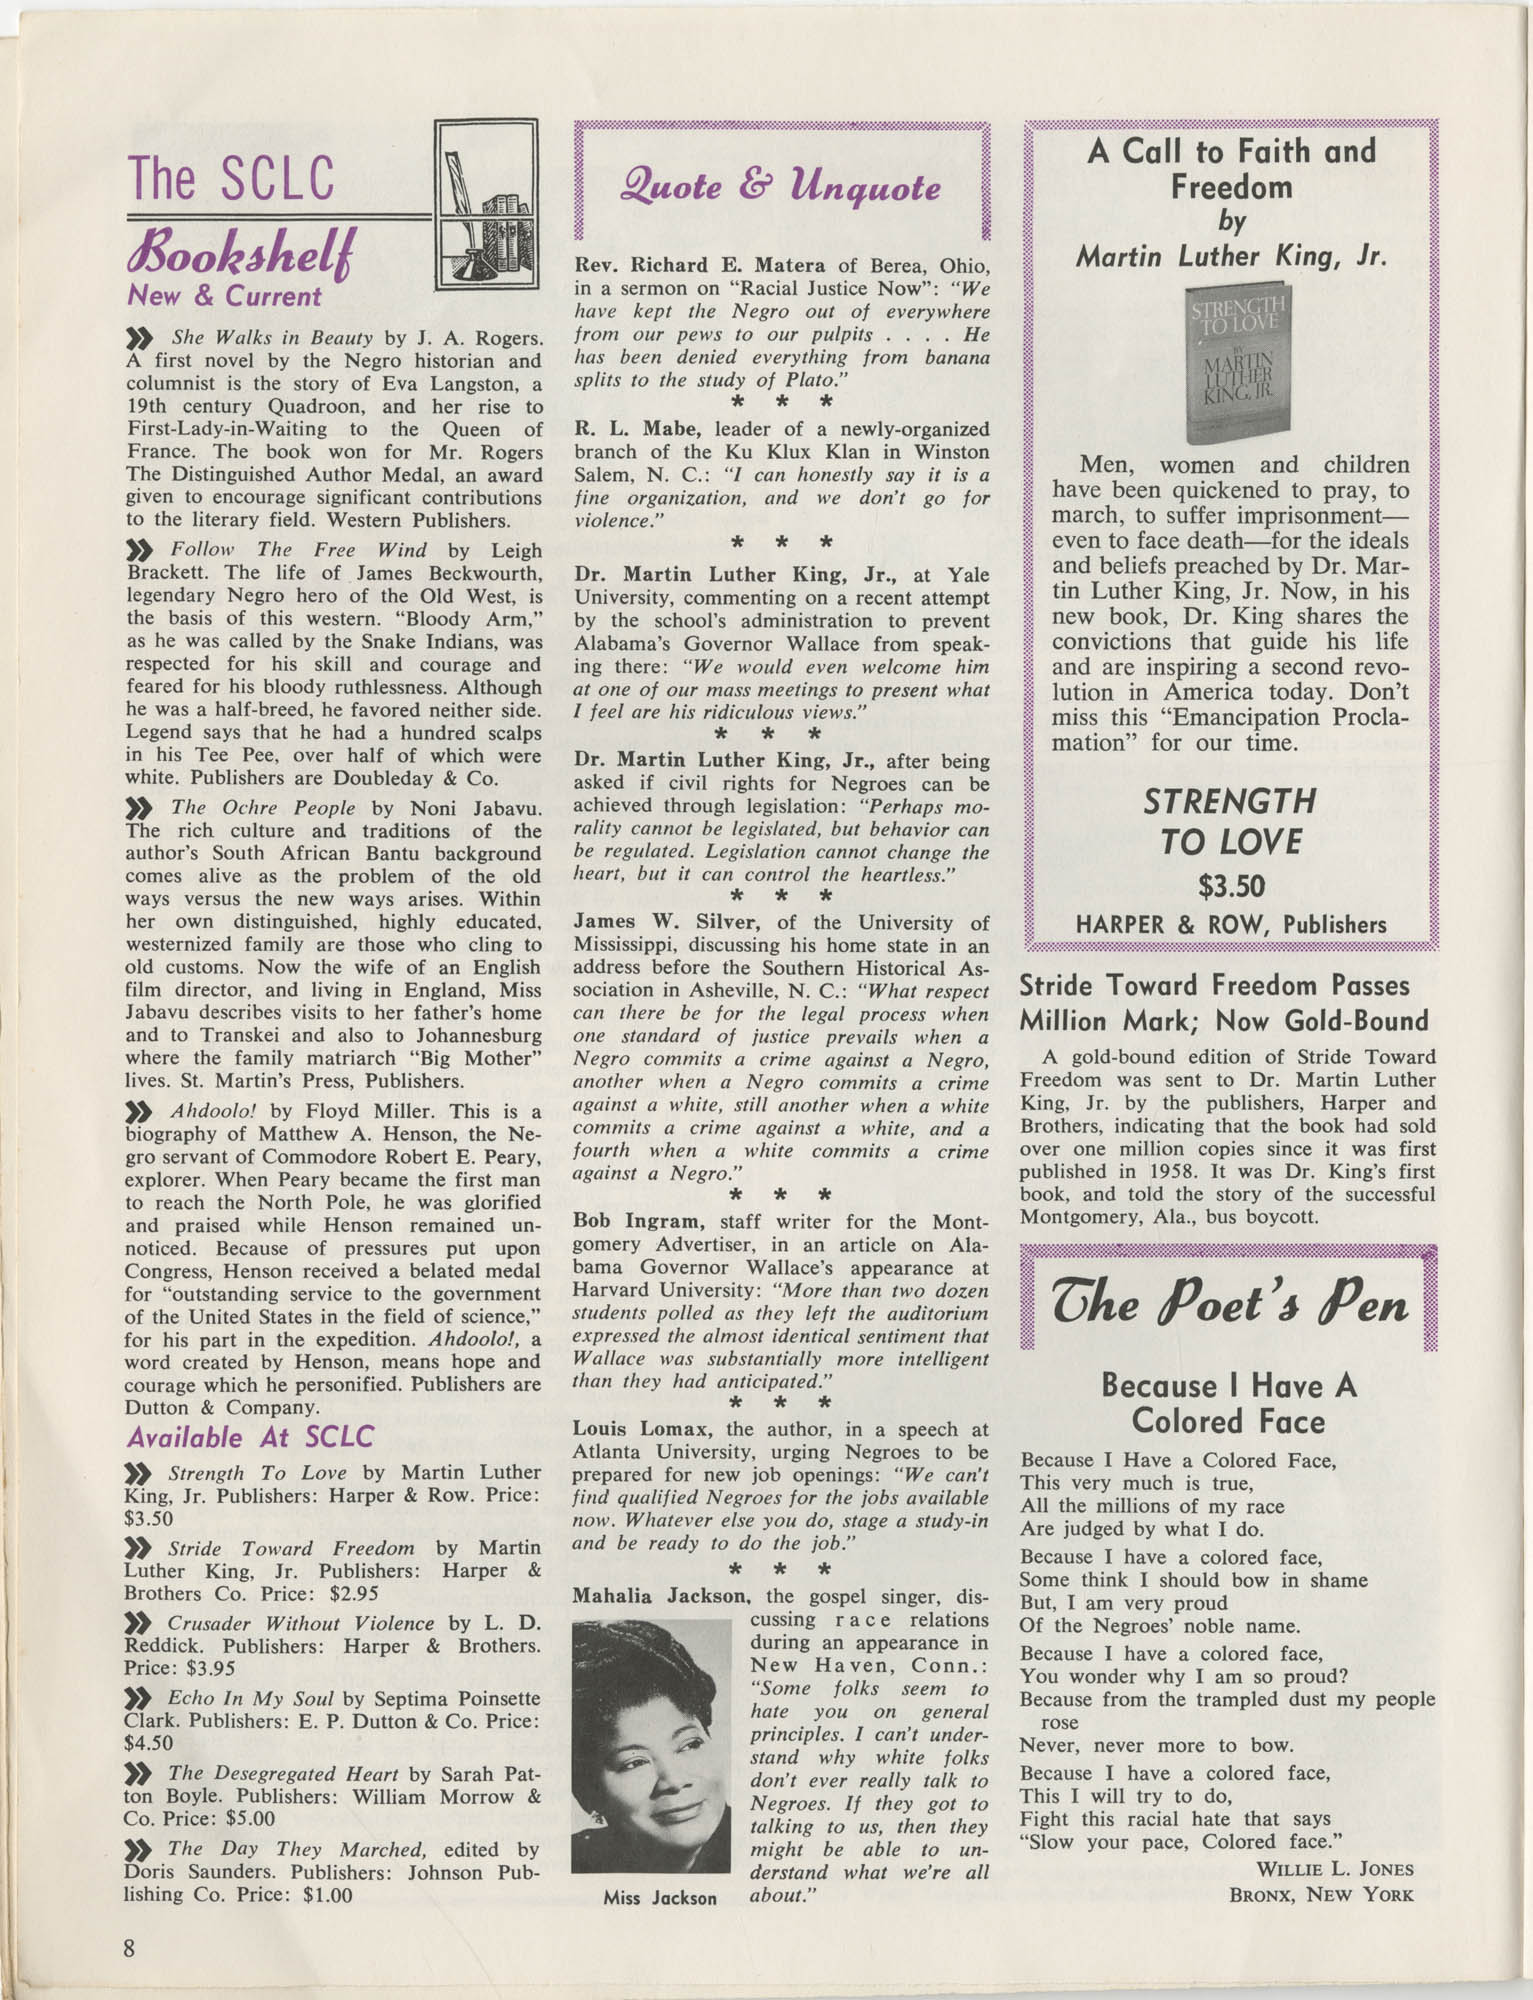 Southern Christian Leadership Conference Newsletter, Volume 2, Number 3, November-December, 1963, Page 8